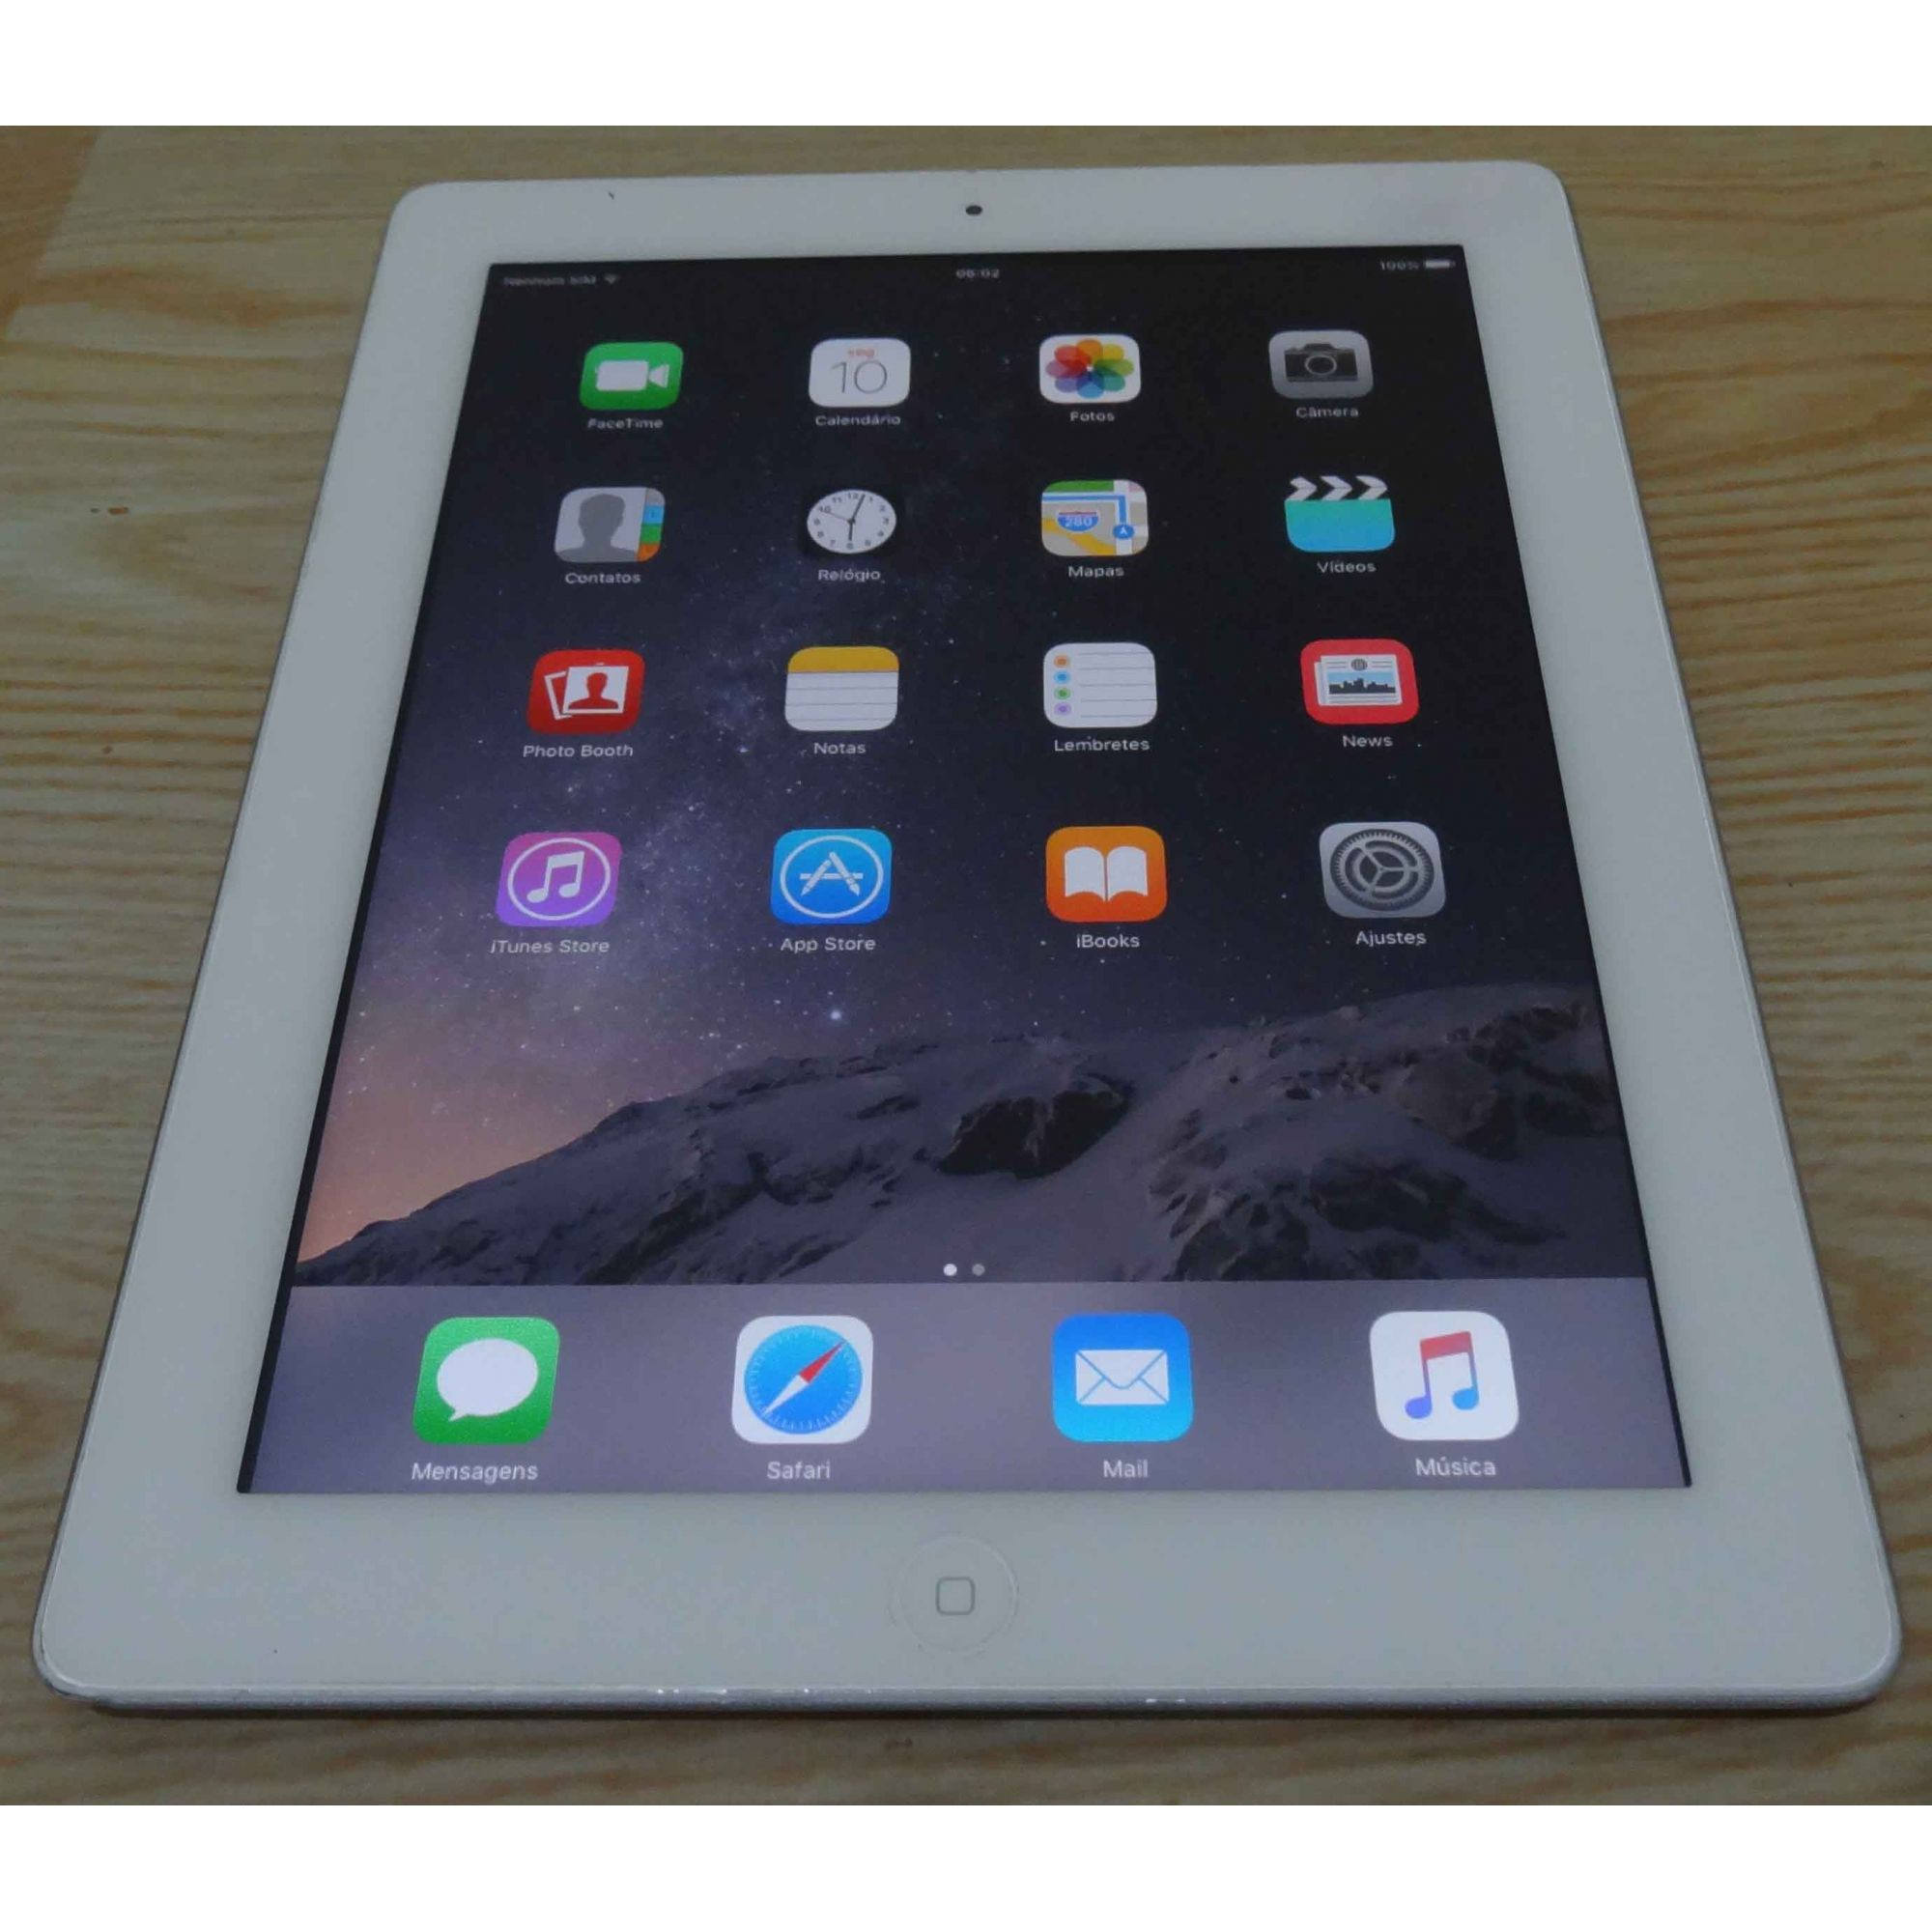 iPad 2 MC982LL/A 9.7'' 16GB 3G/Wifi - White